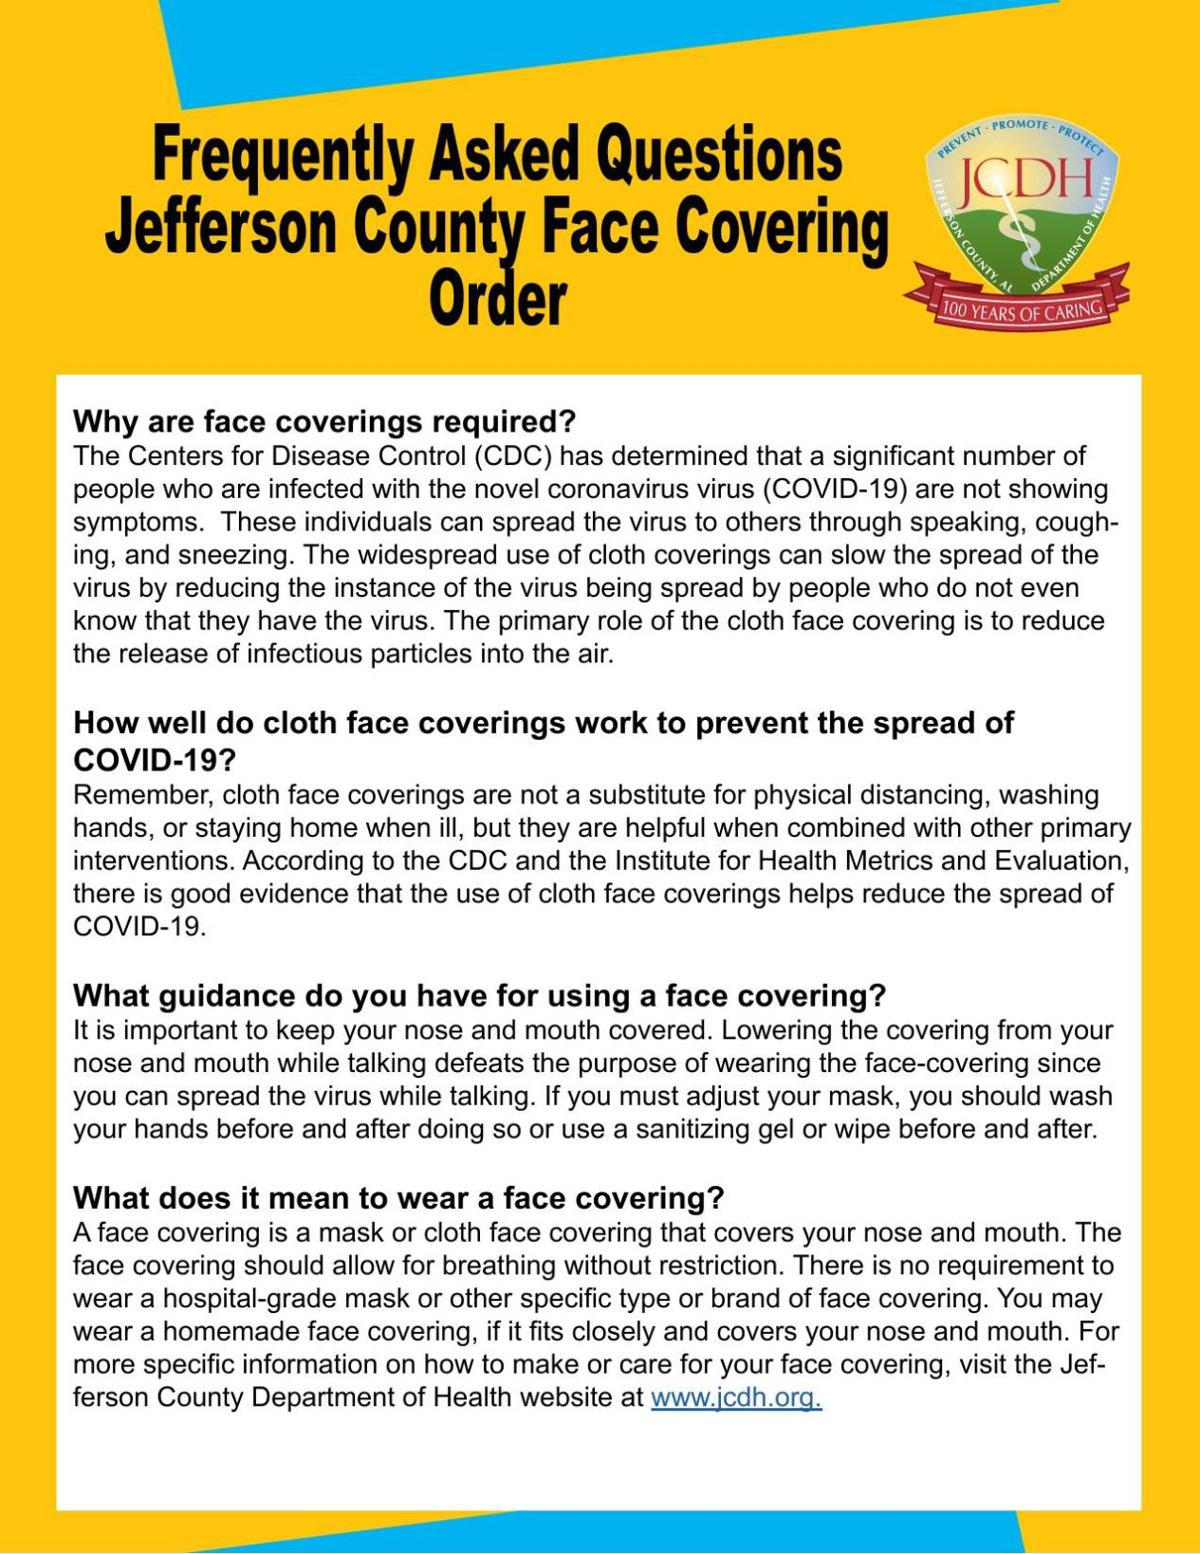 Frequenty Asked Questions Jefferson County, Alabama Face Covering Order.pdf